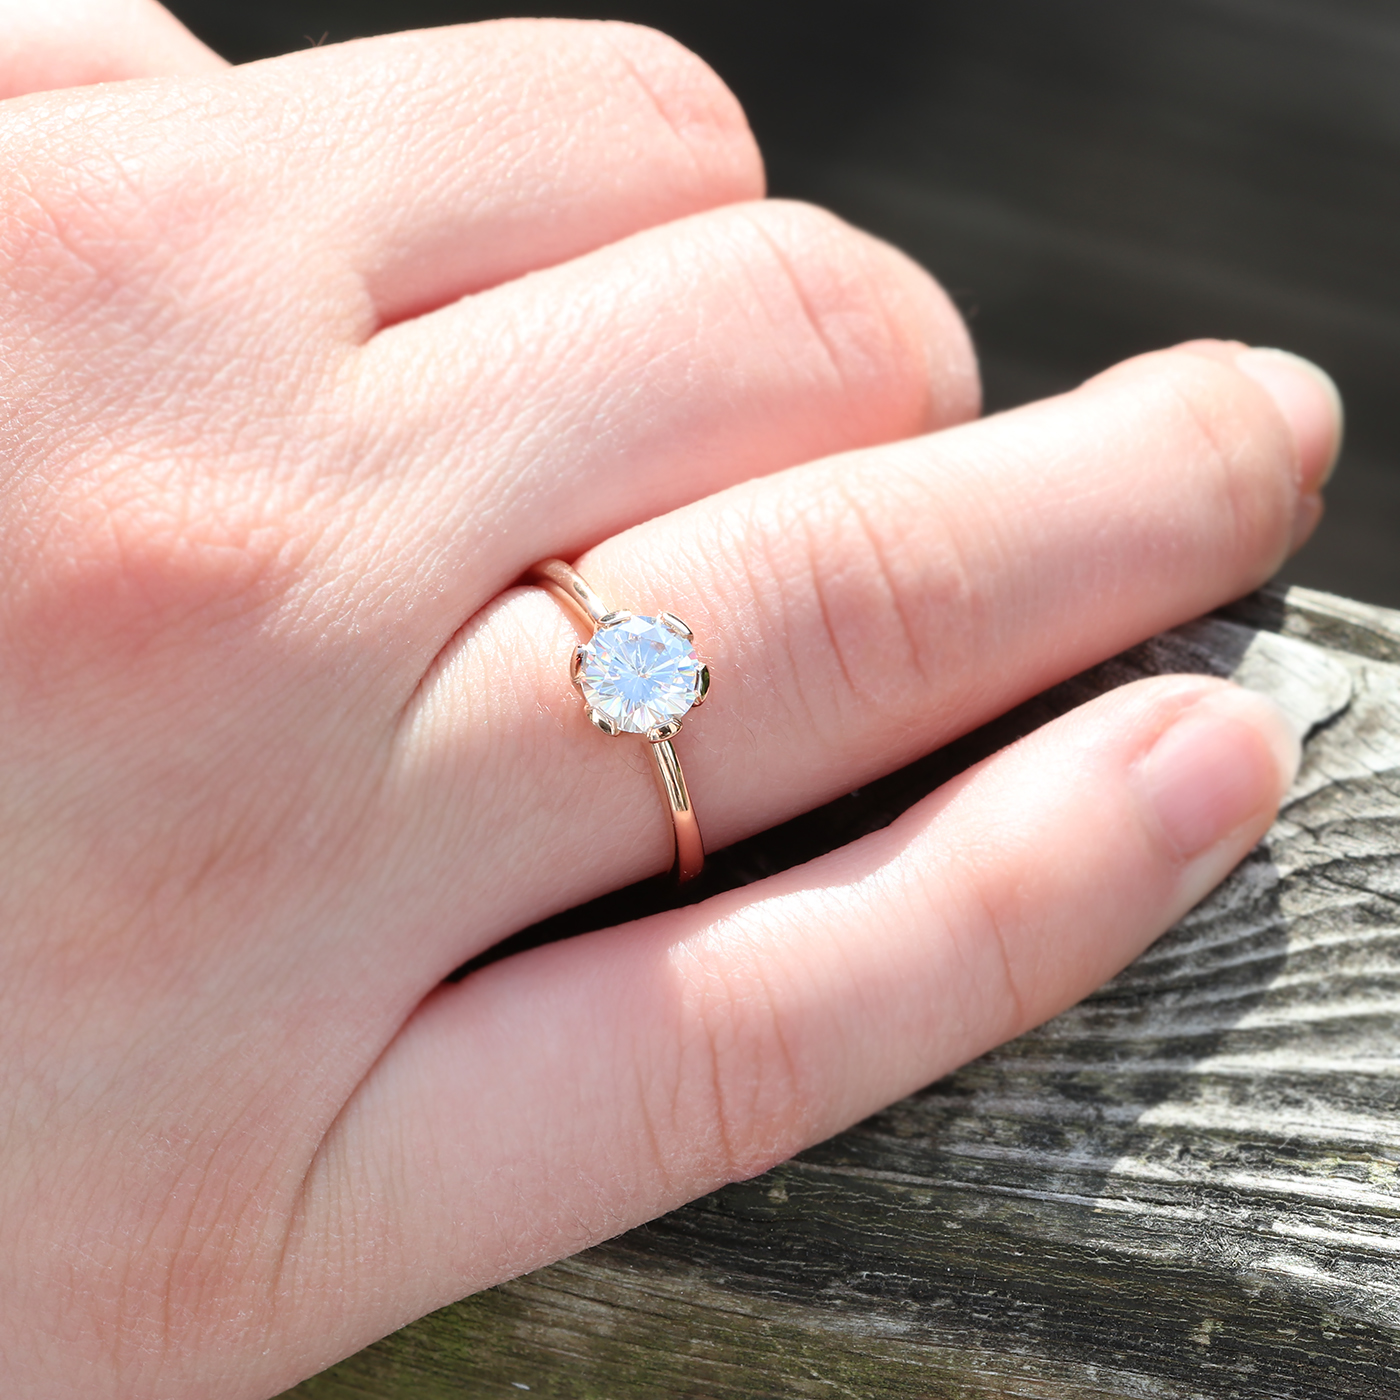 Moissanite Engagement Ring In 18ct Rose Gold Size M 1 2 Can Be Resized J 1 2 To N Lilia Nash